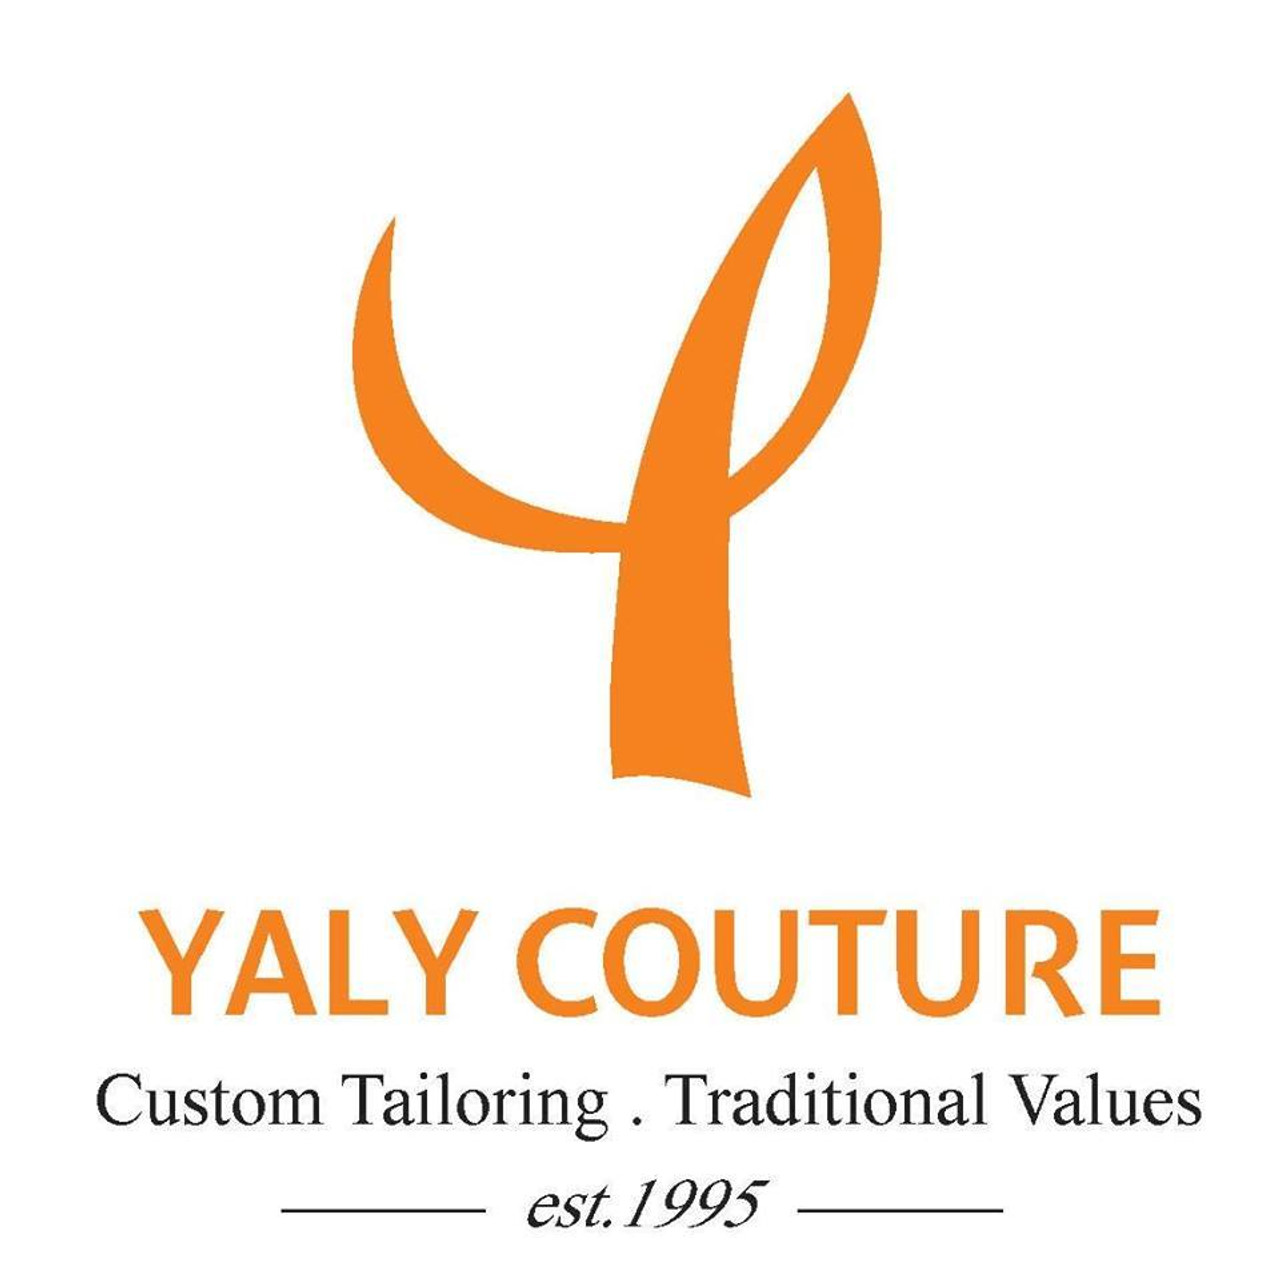 Yaly Couture